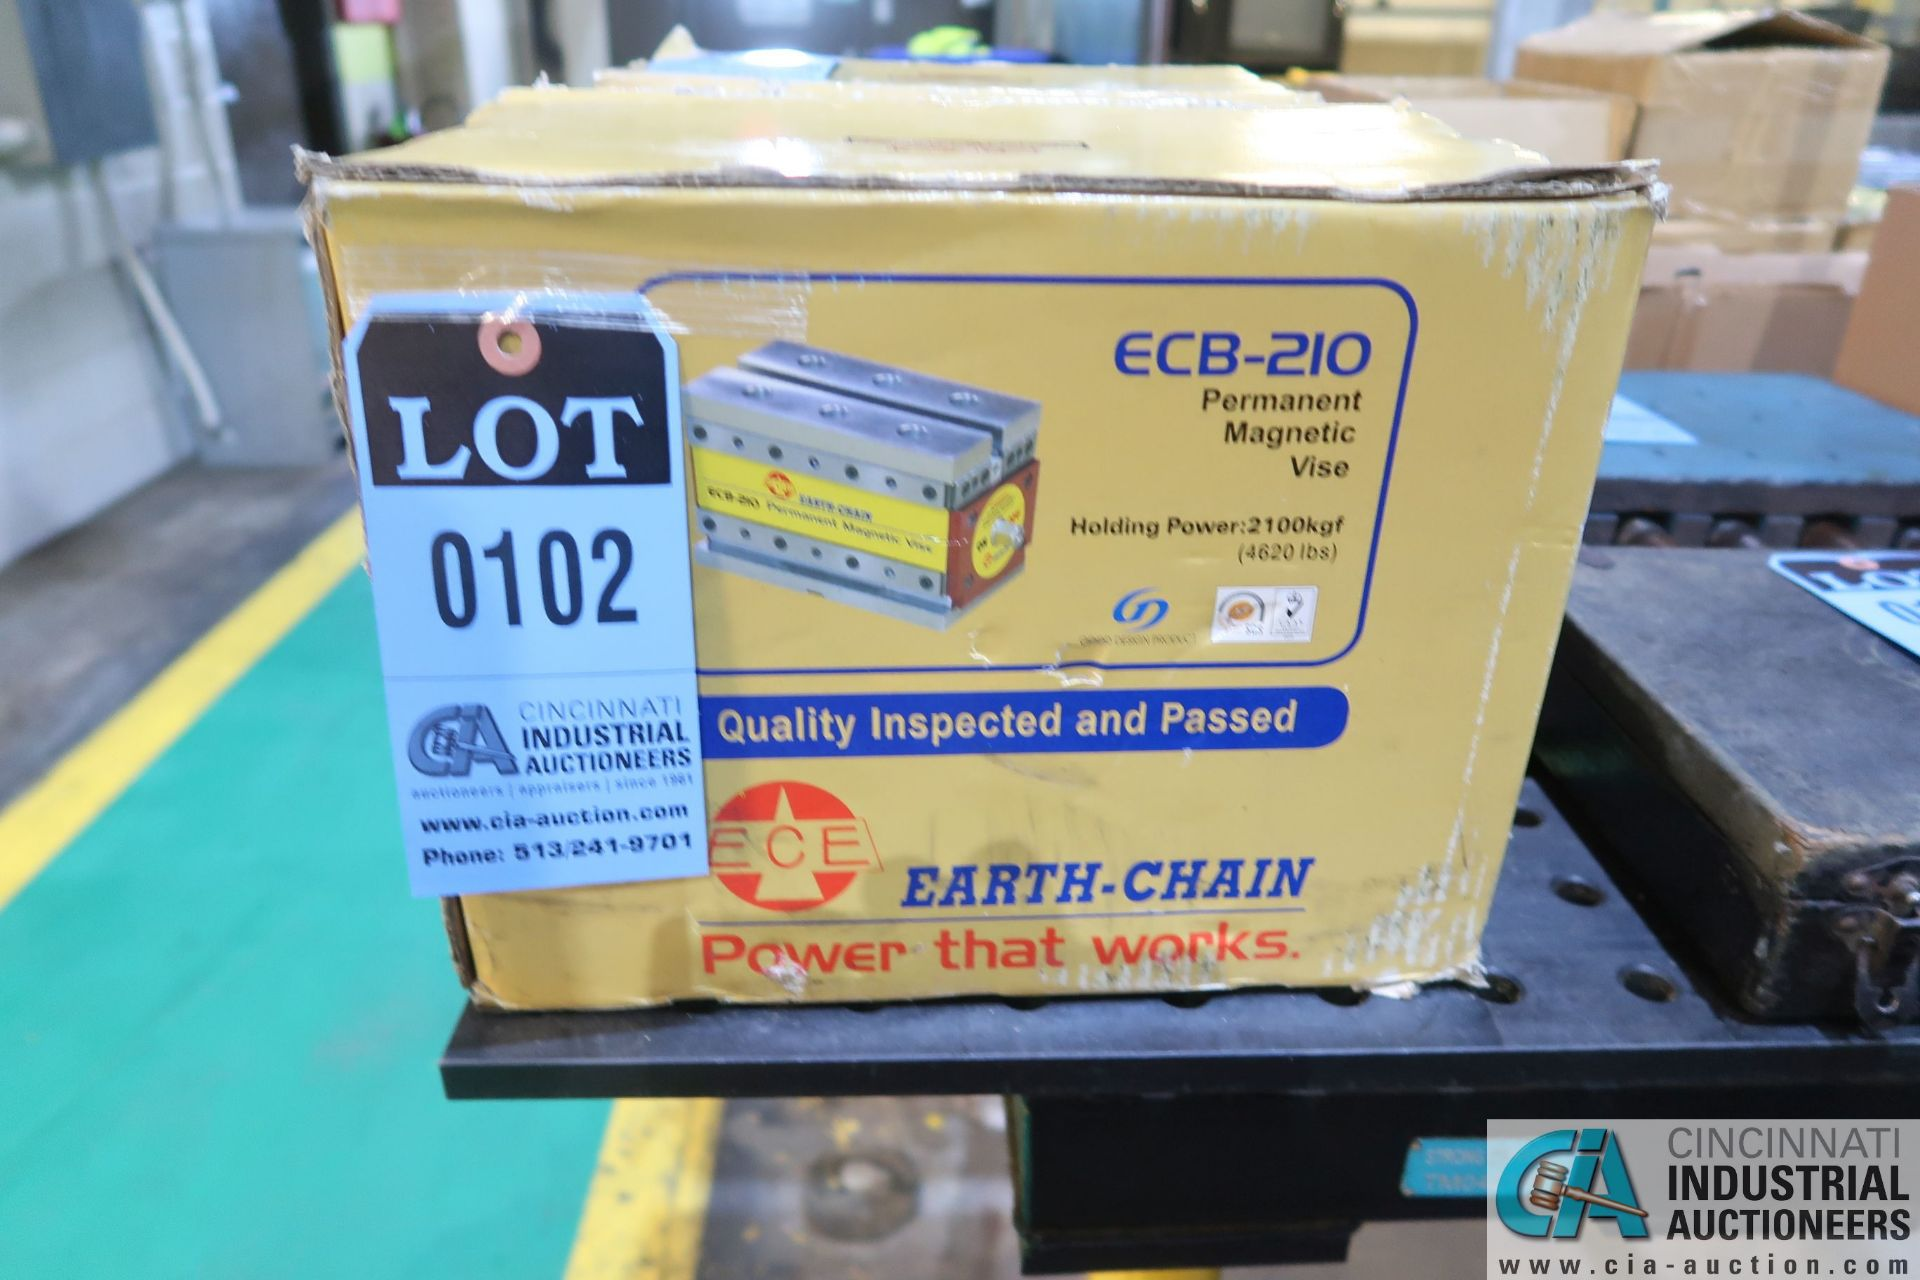 EARTH-CHAIN MODEL ECB-210, NEW PERMANENT MAGNETIC VISE; S/N 2105375, 4,620 LB. HOLDING POWER